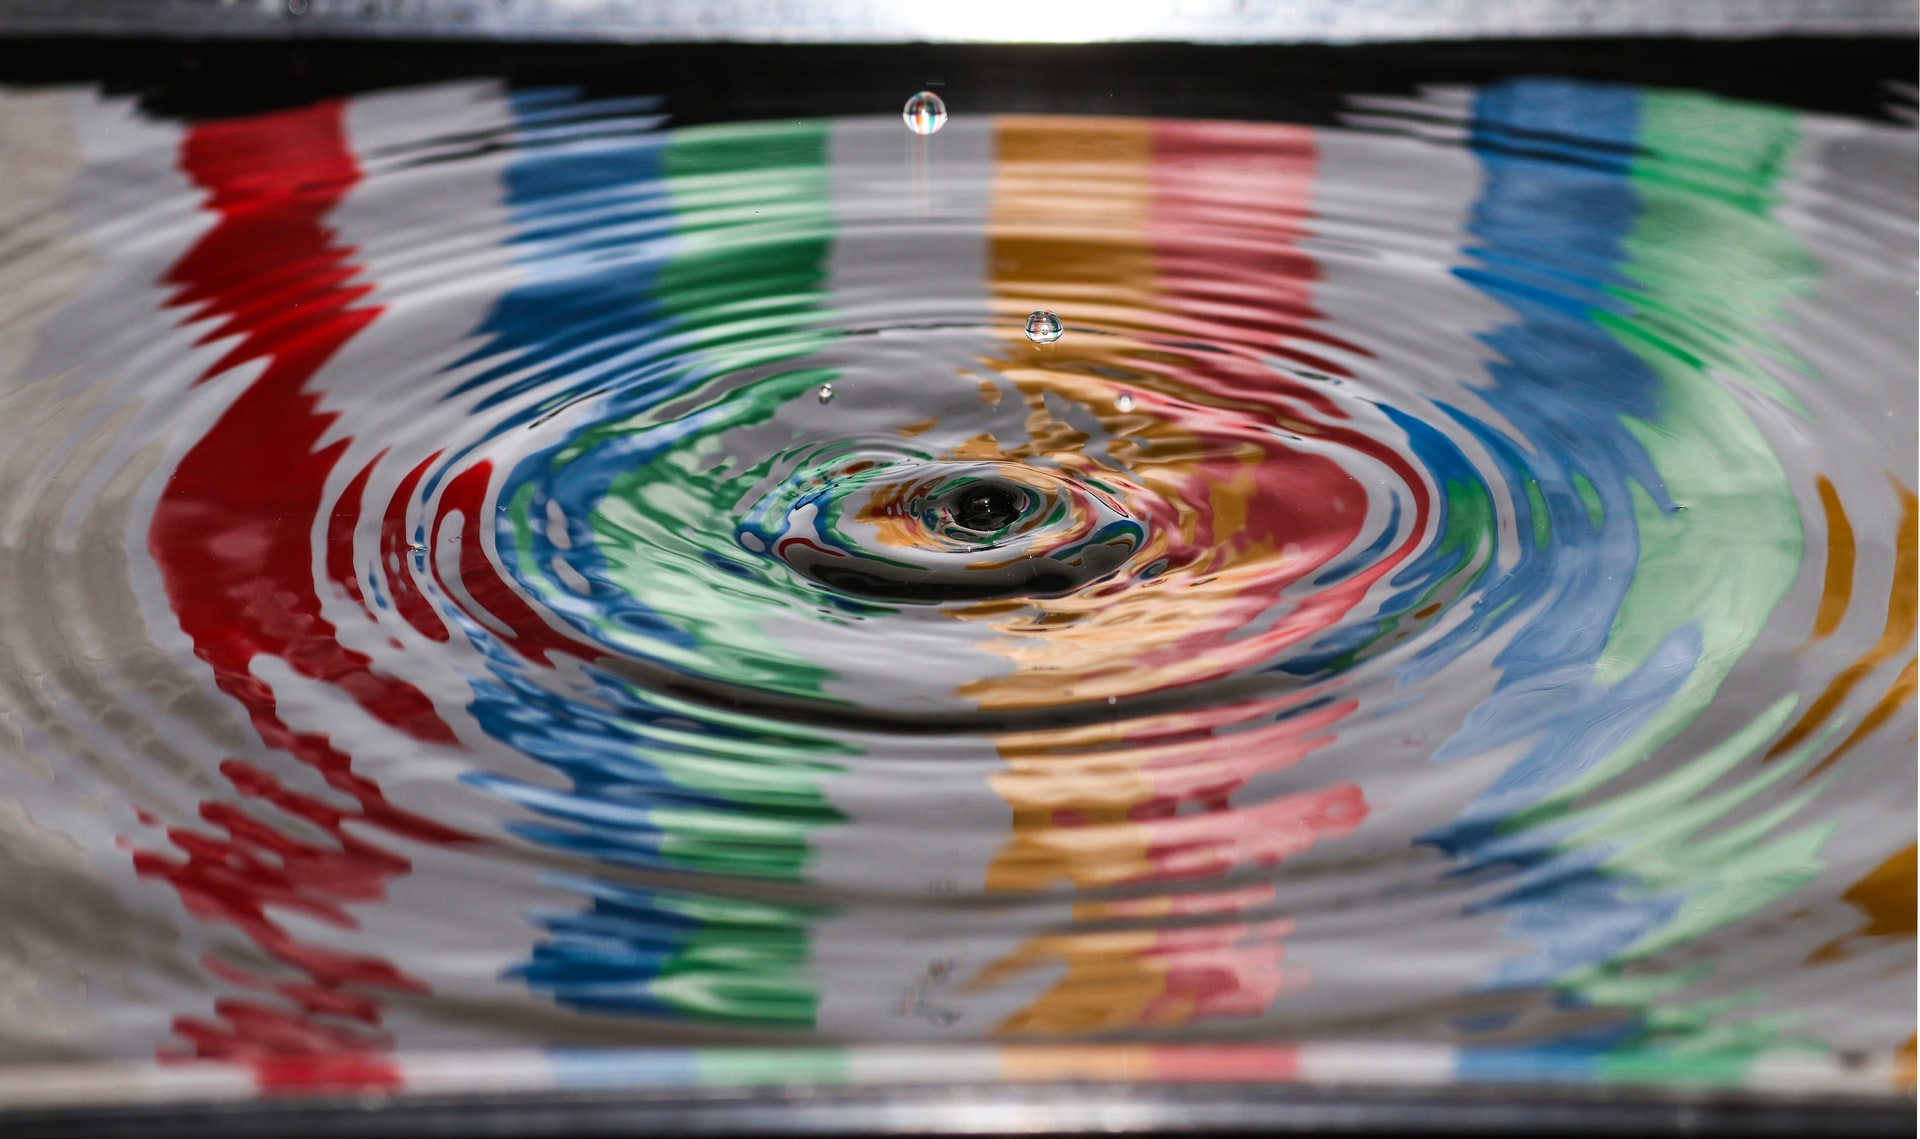 A ripple on the surface of water